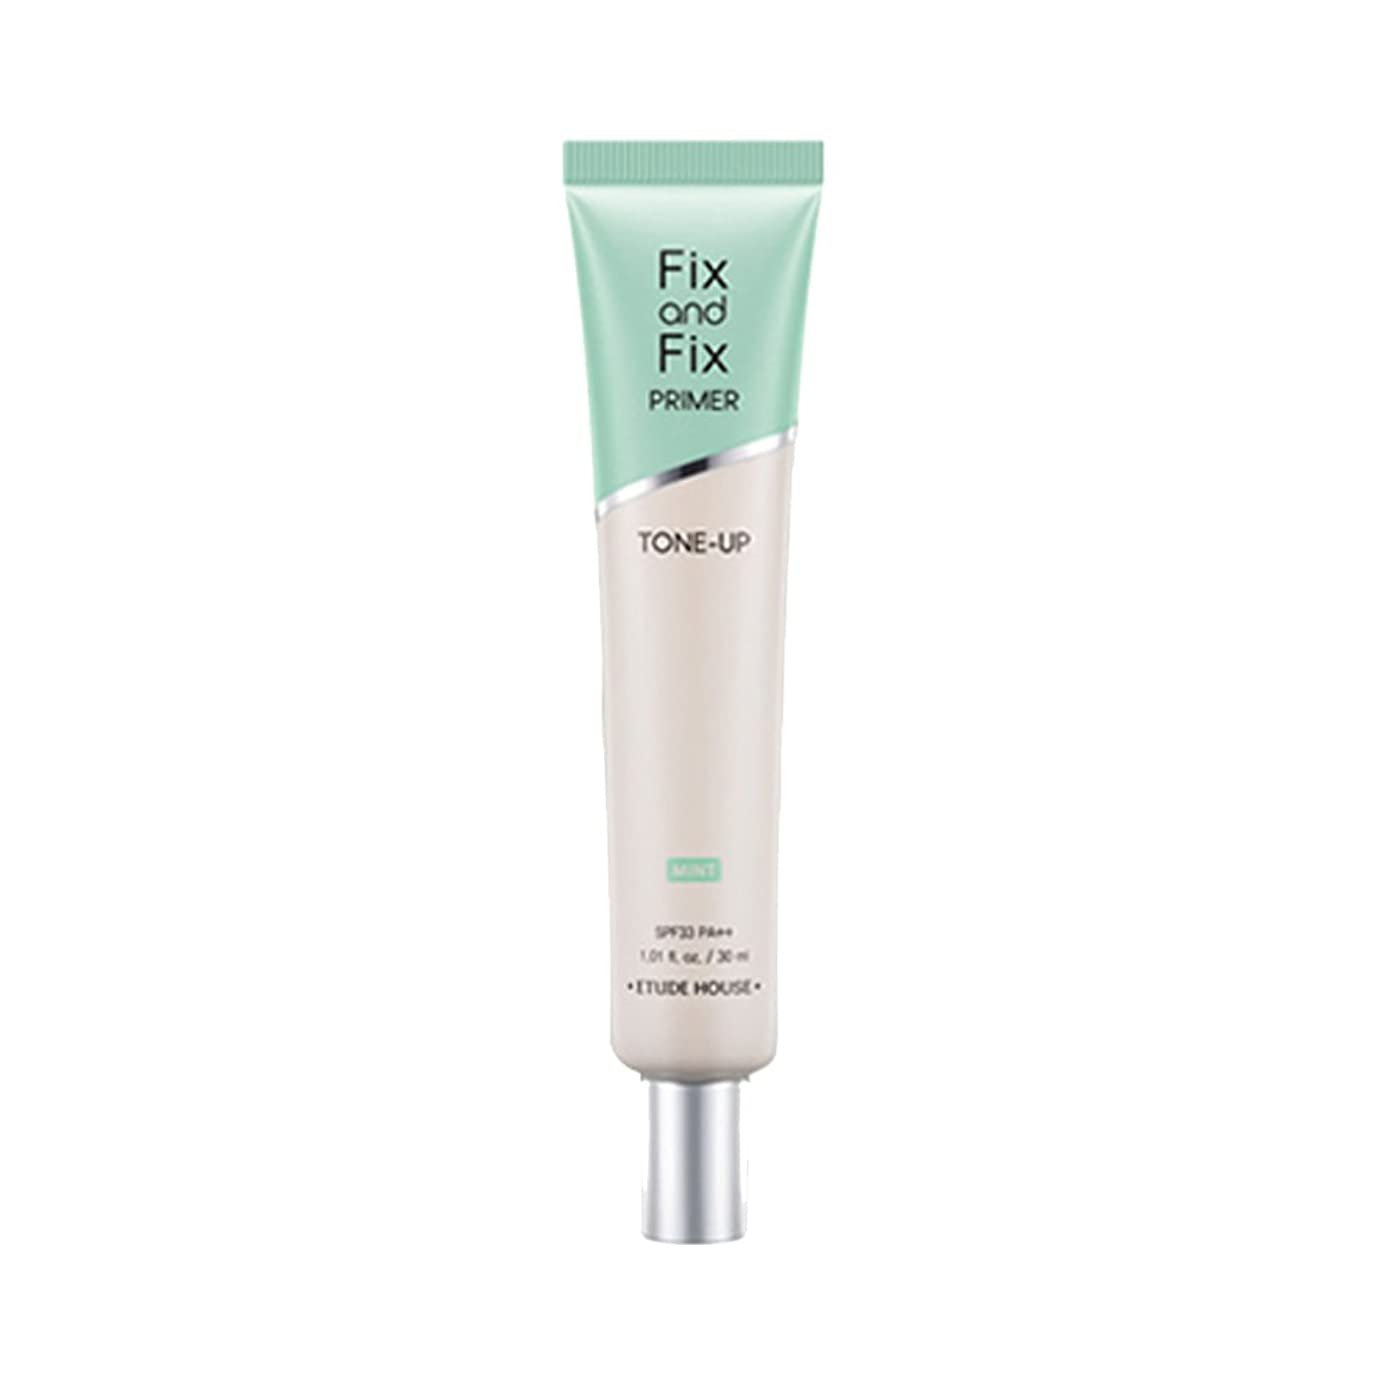 弓体現する重々しい(3 Pack) ETUDE HOUSE Fix And Fix Primer Tone Up Primer - Mint (並行輸入品)